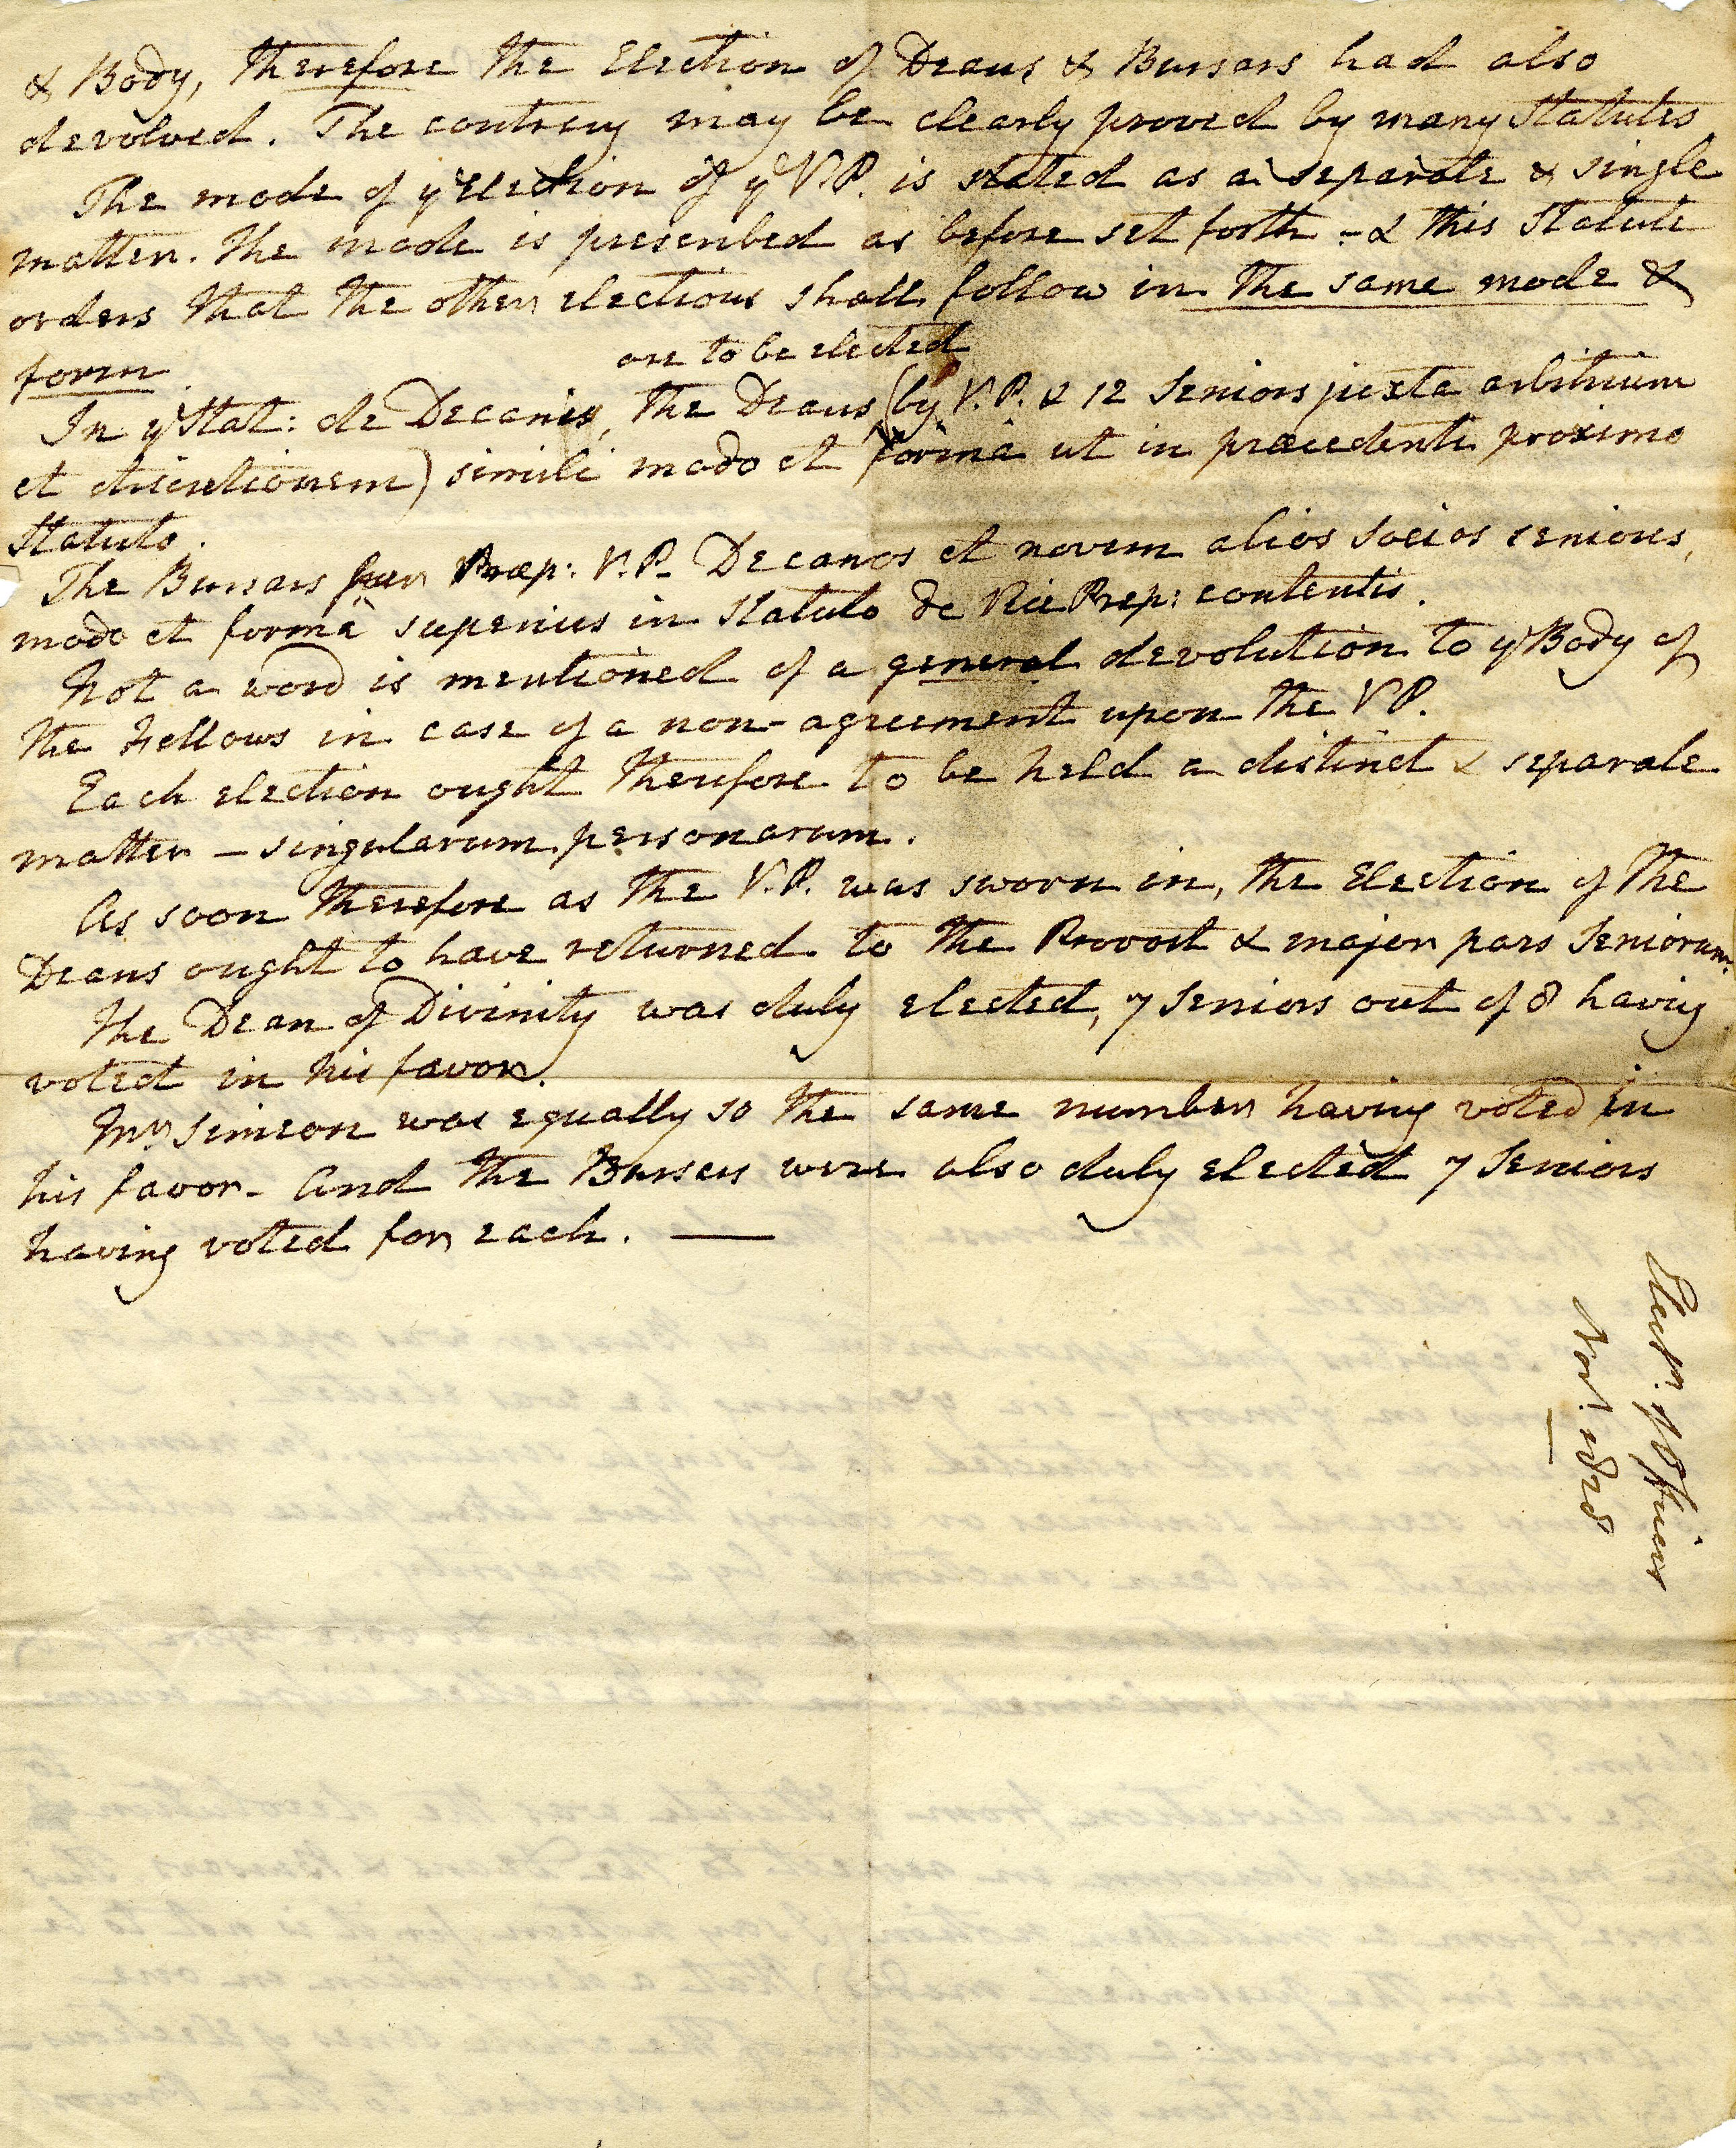 Second page of notes on the election of Officers in November 1828, setting out how the relevant statutes had been ignored (KC/69)